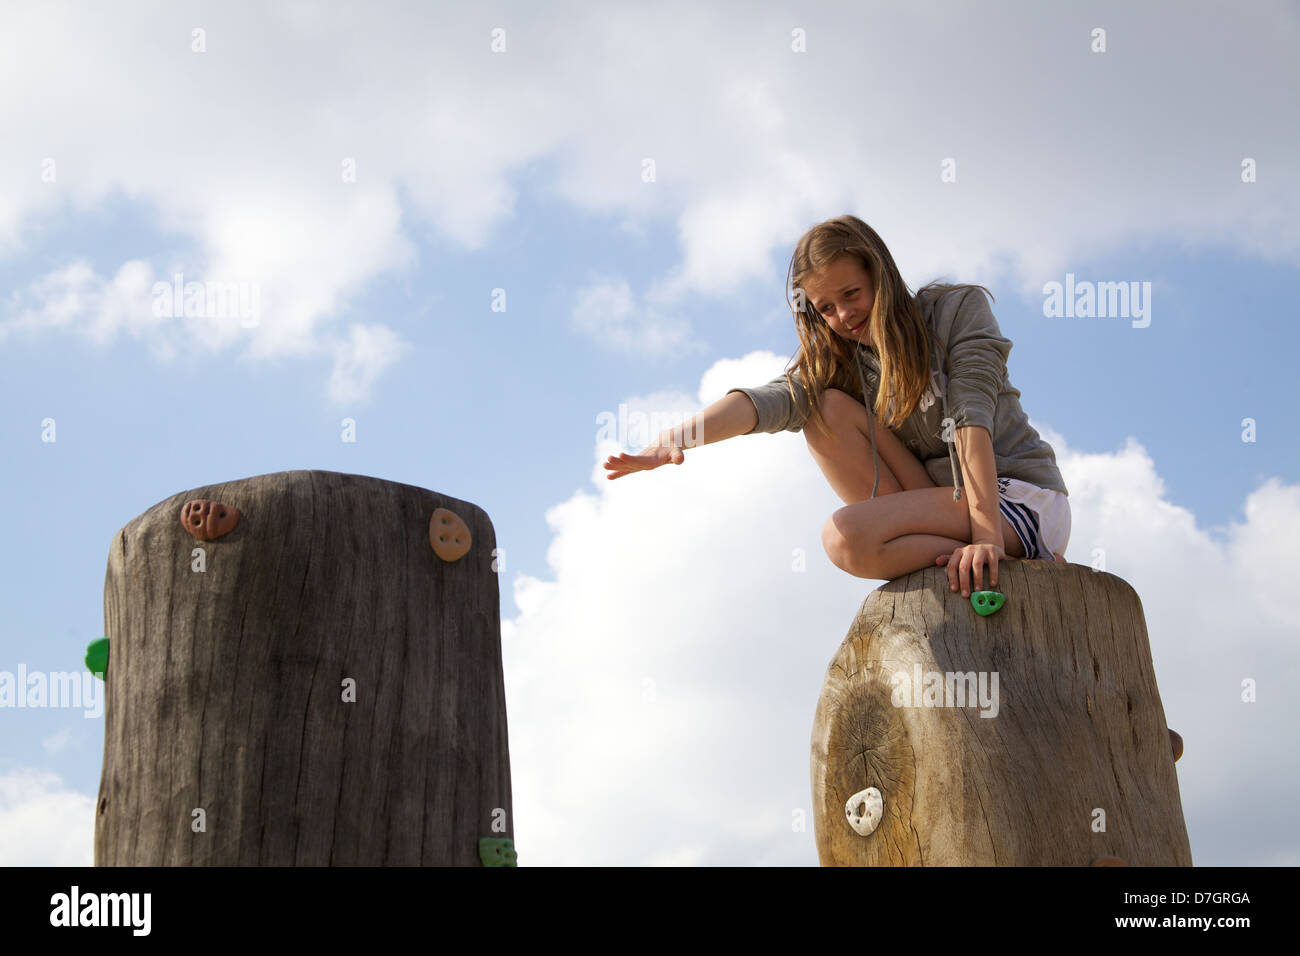 girl balancing on tree trunk attempting reach across a divide - Stock Image